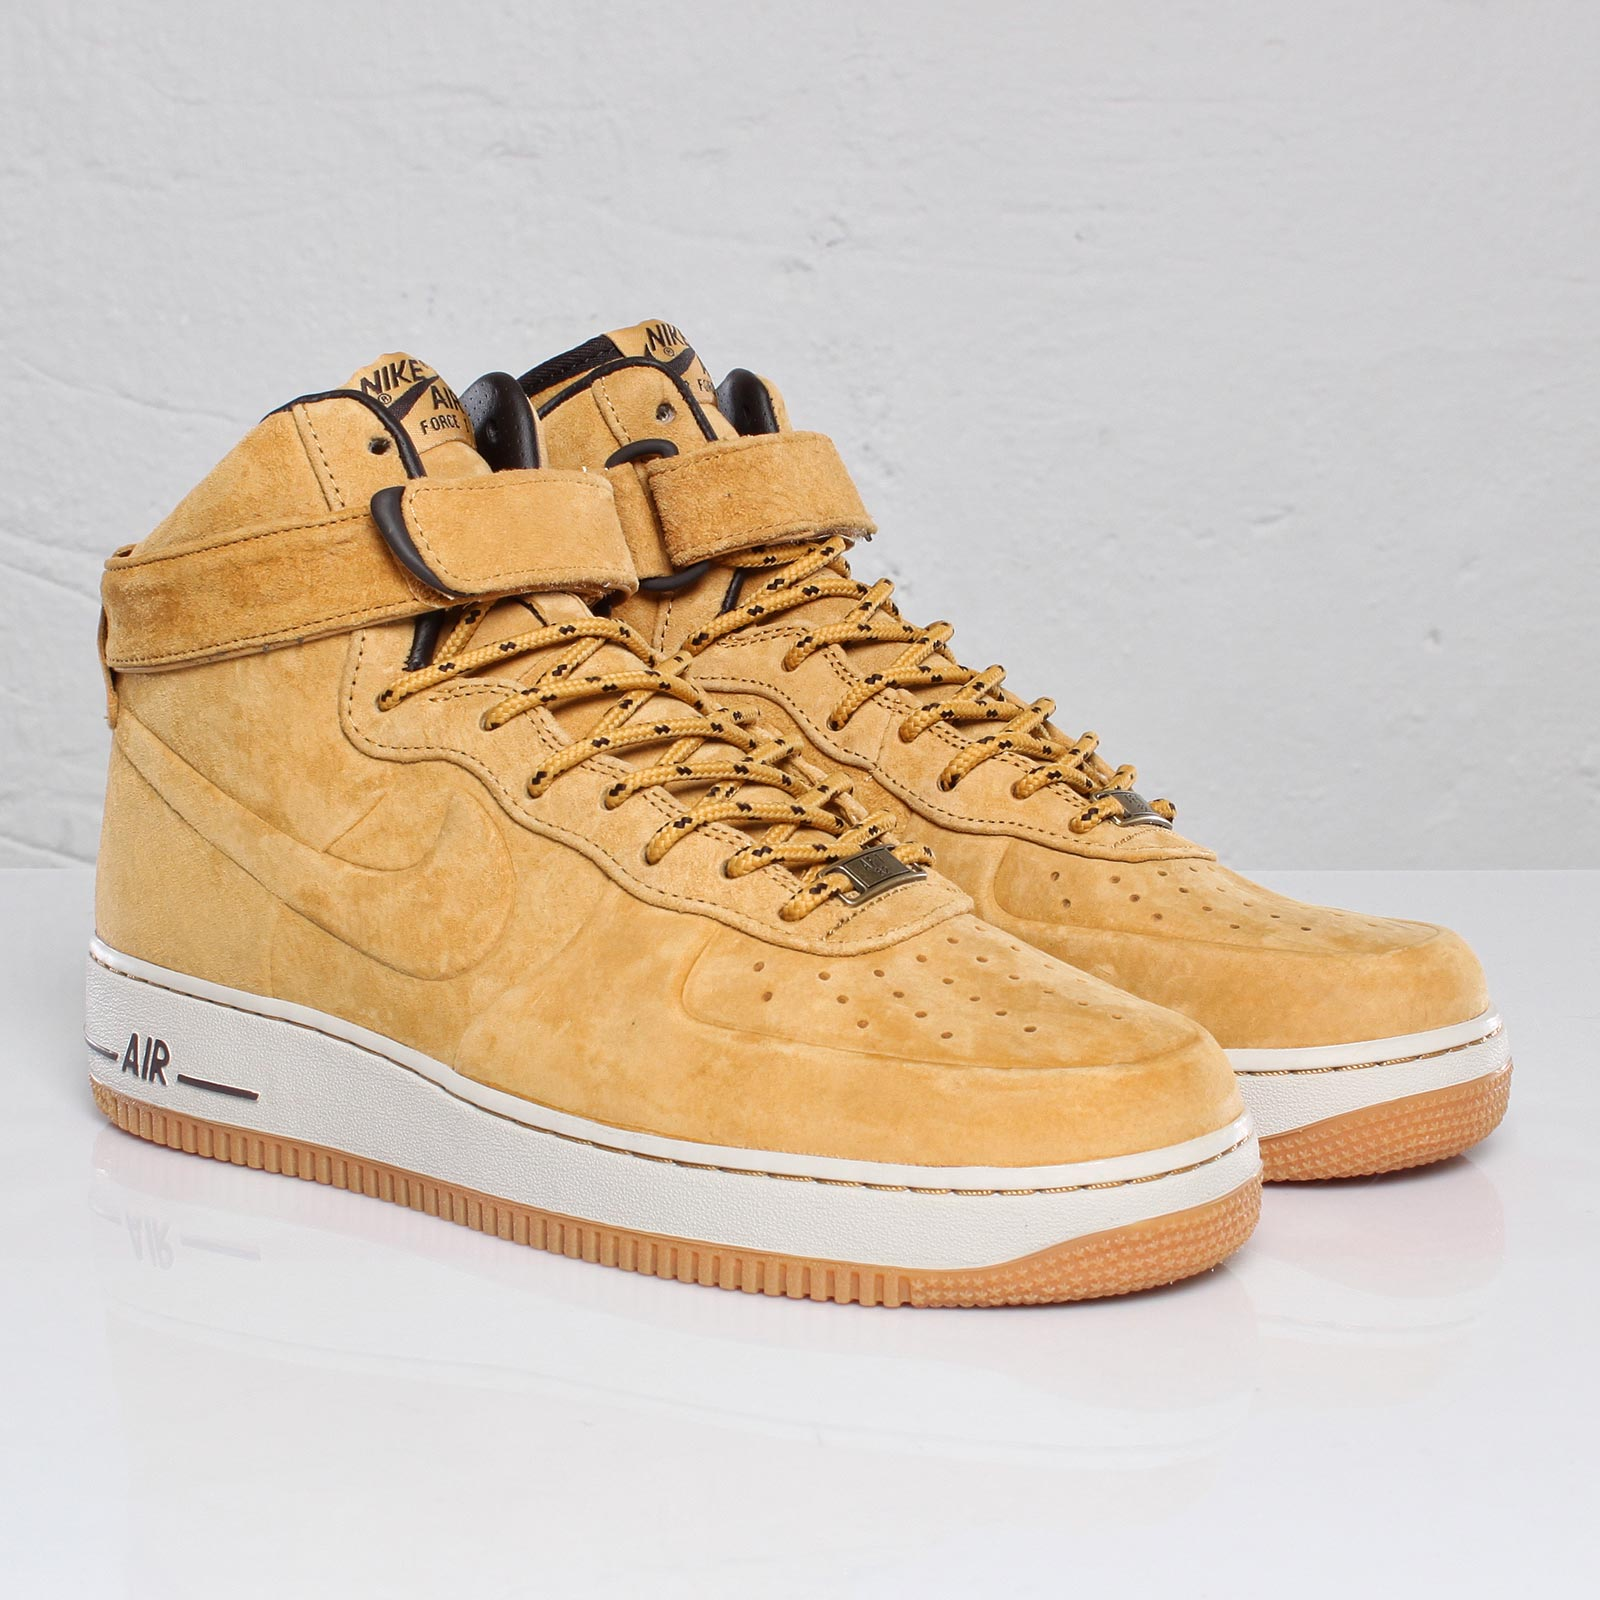 Nike Air Force 1 Hi VT Prm QS 102557 Sneakersnstuff I